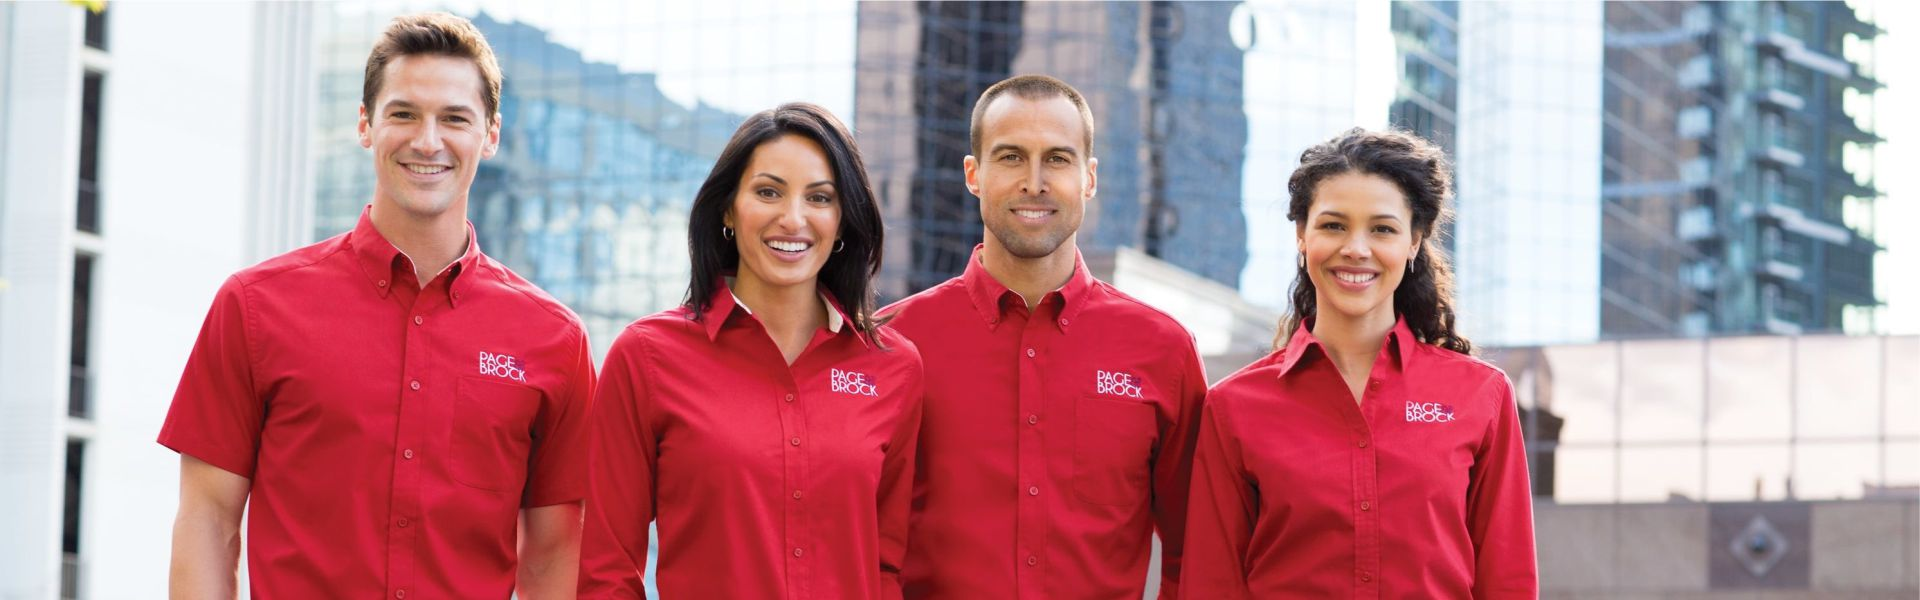 Business work wear red shirts embroidered left chest